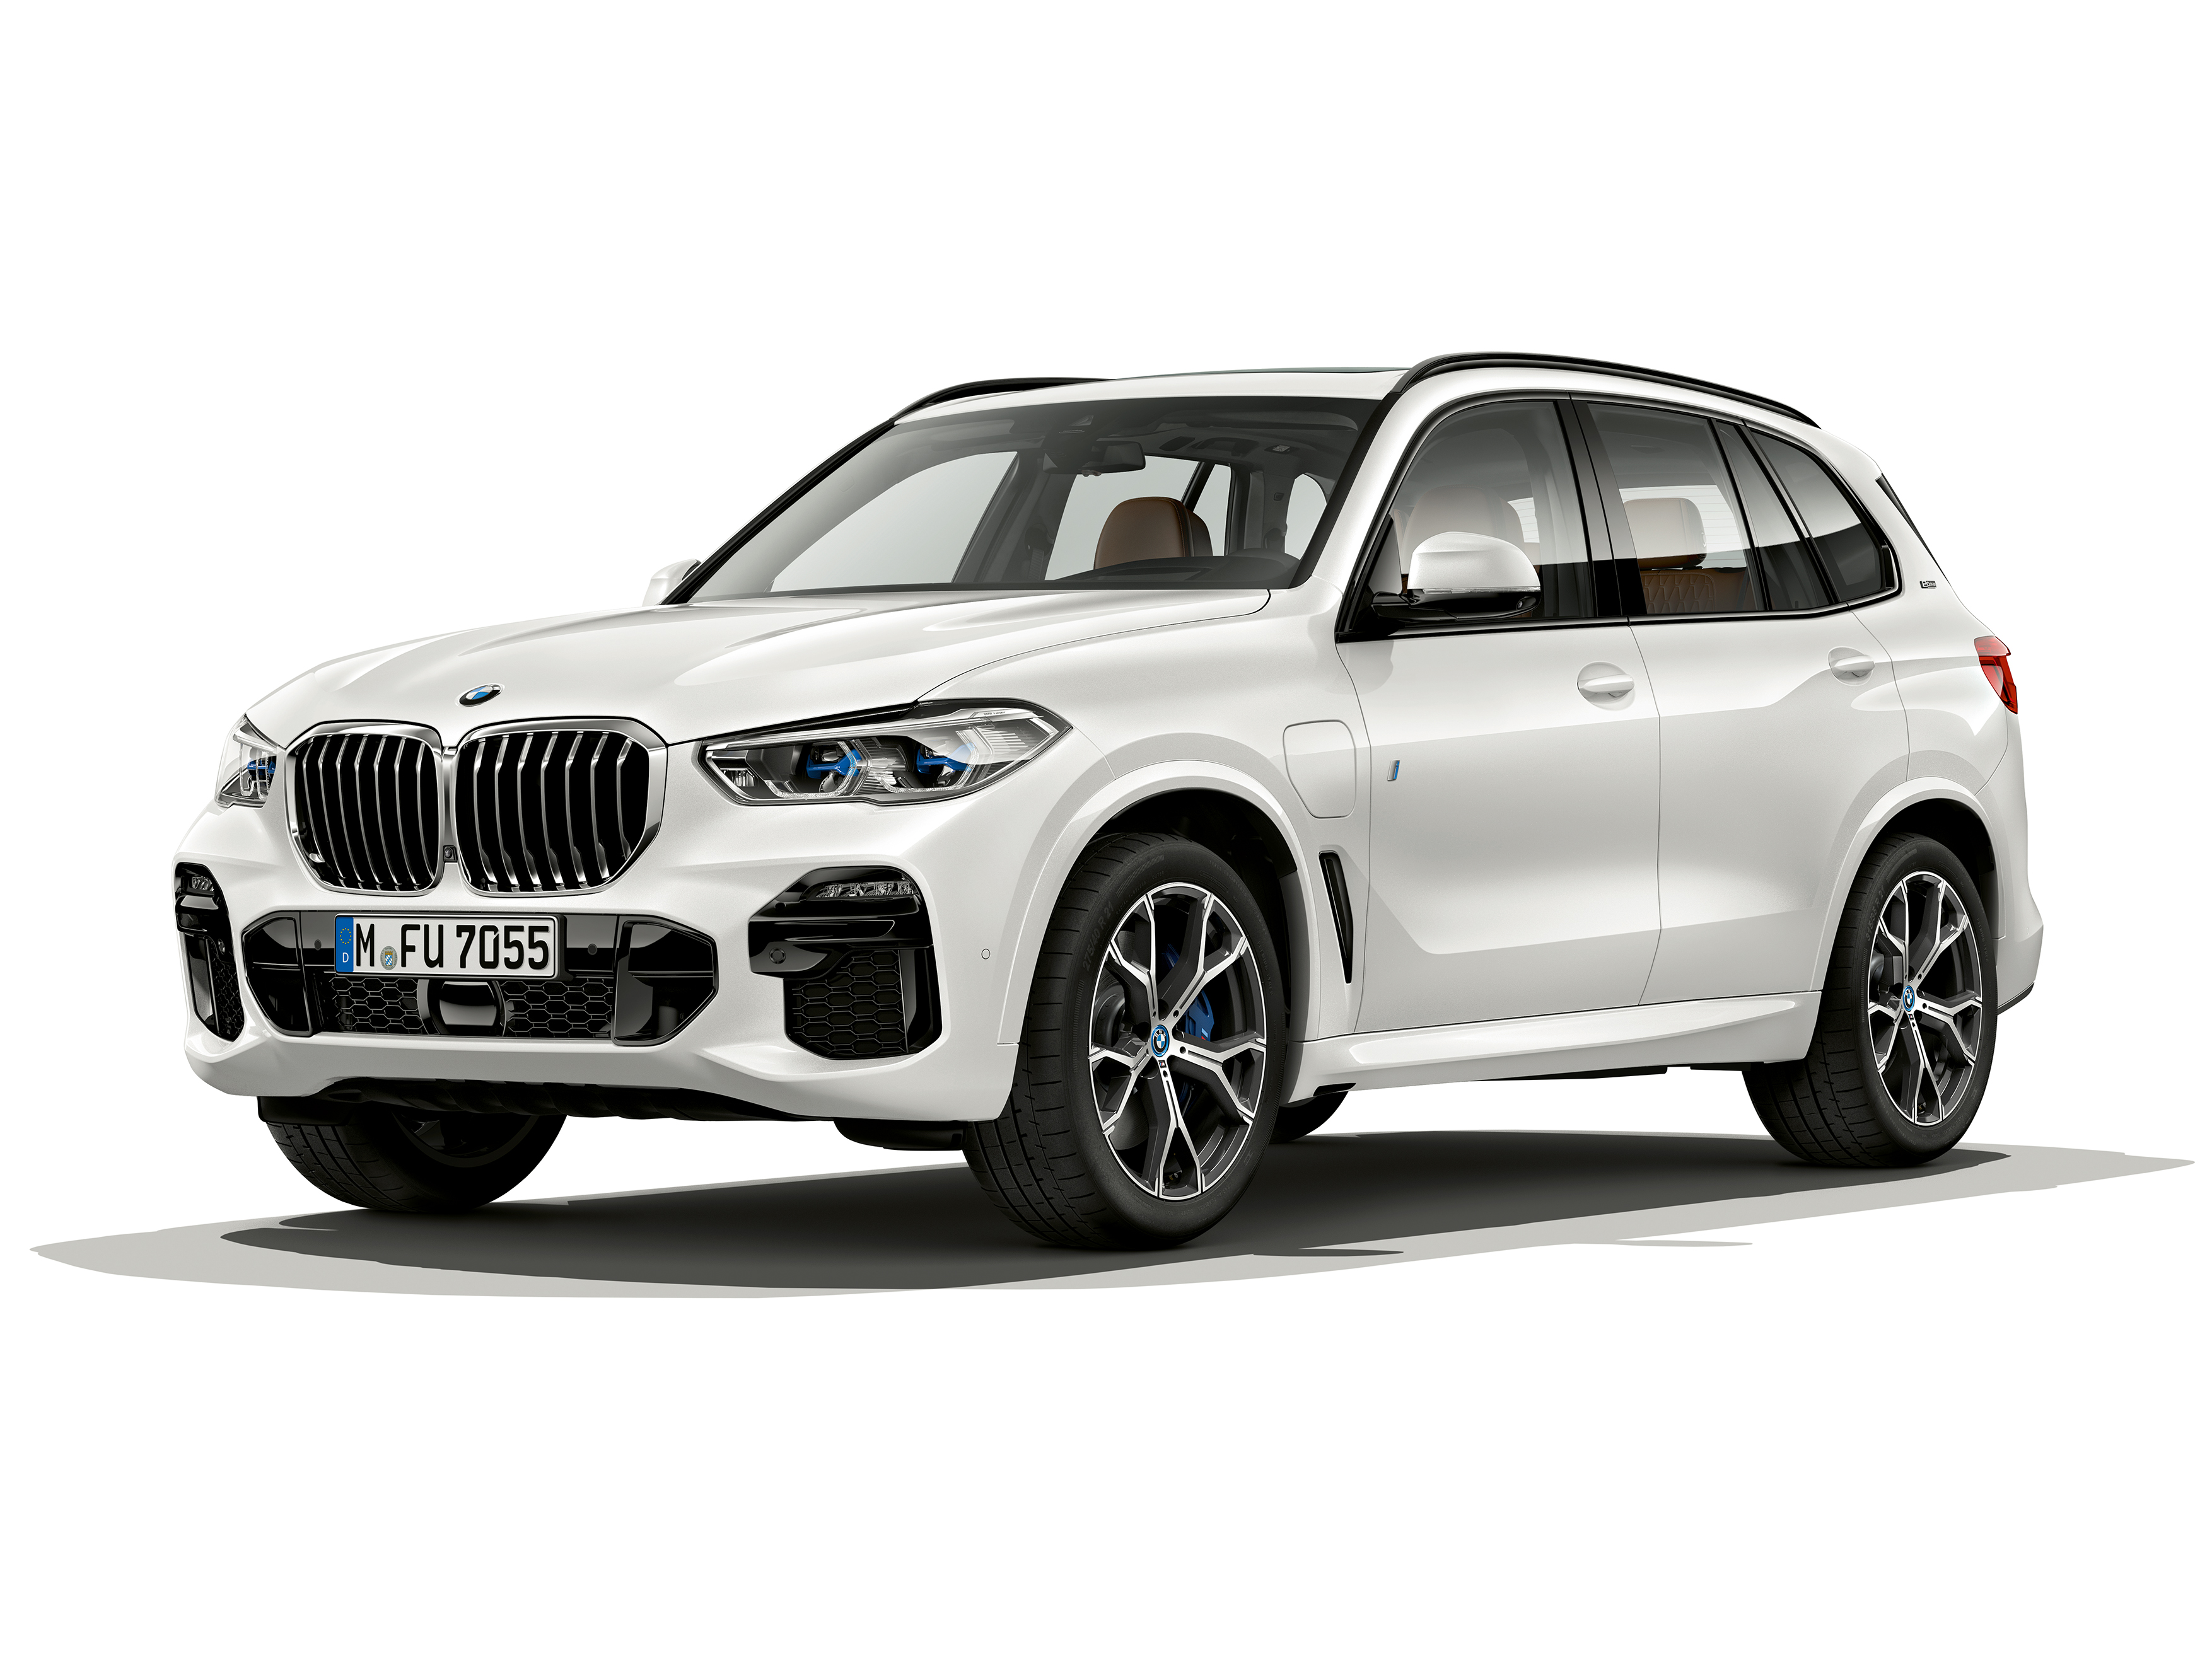 Introducing The Bmw X5 Xdrive45e Iperformance With 390 Hp 442 Lb Ft Bmw X5 Forum G05